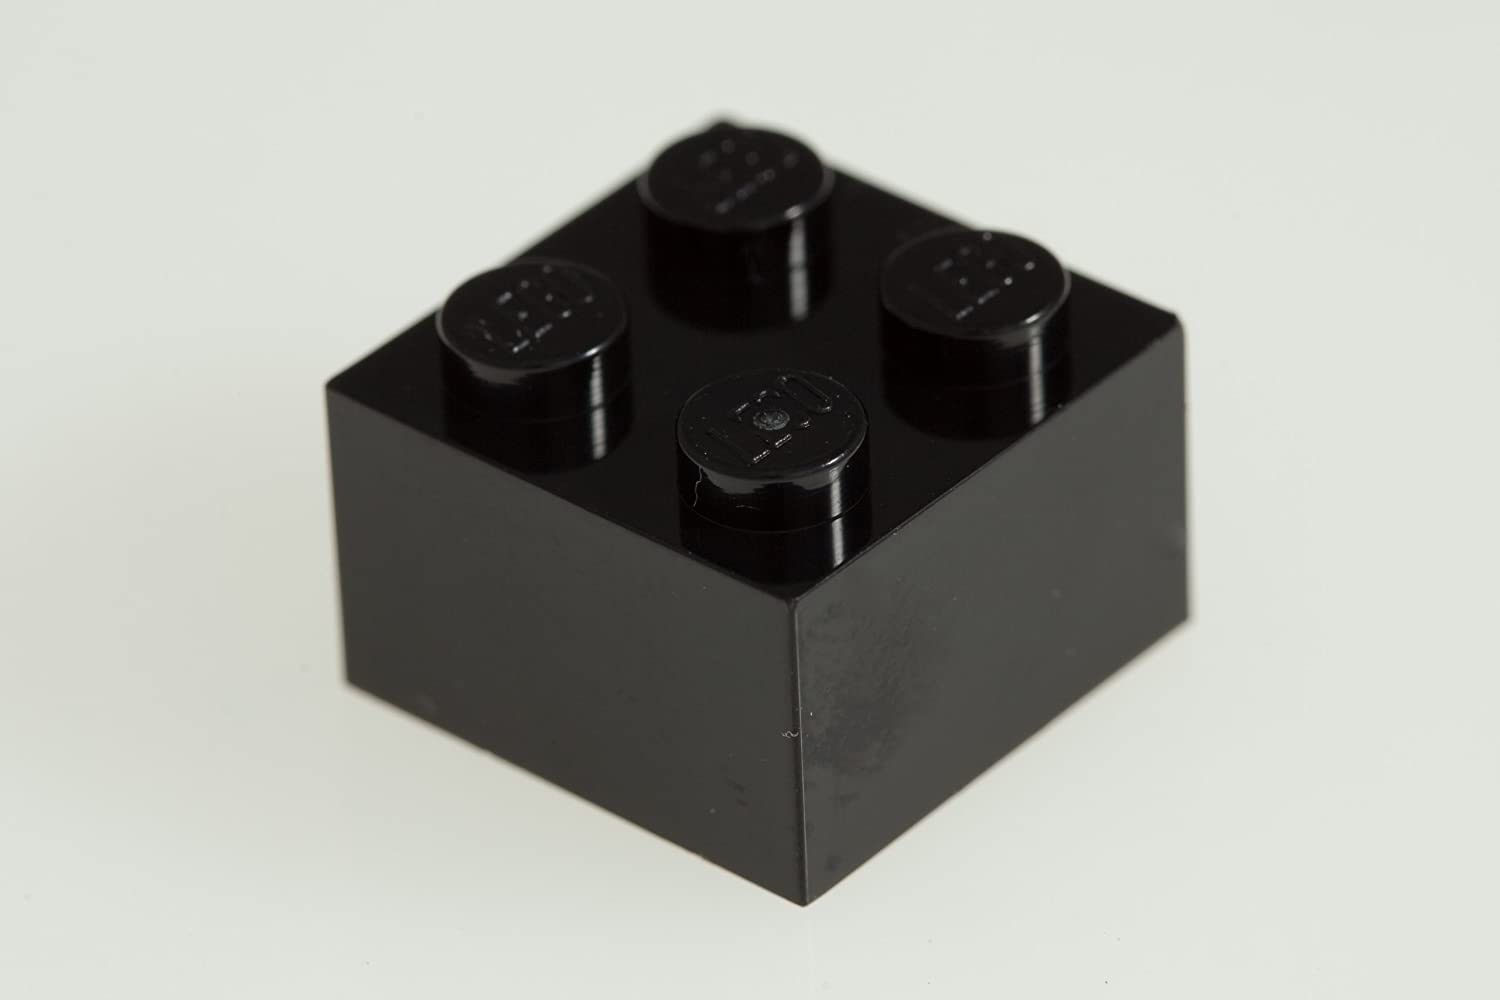 200x Lego Black 2x2 Bricks Super Pack